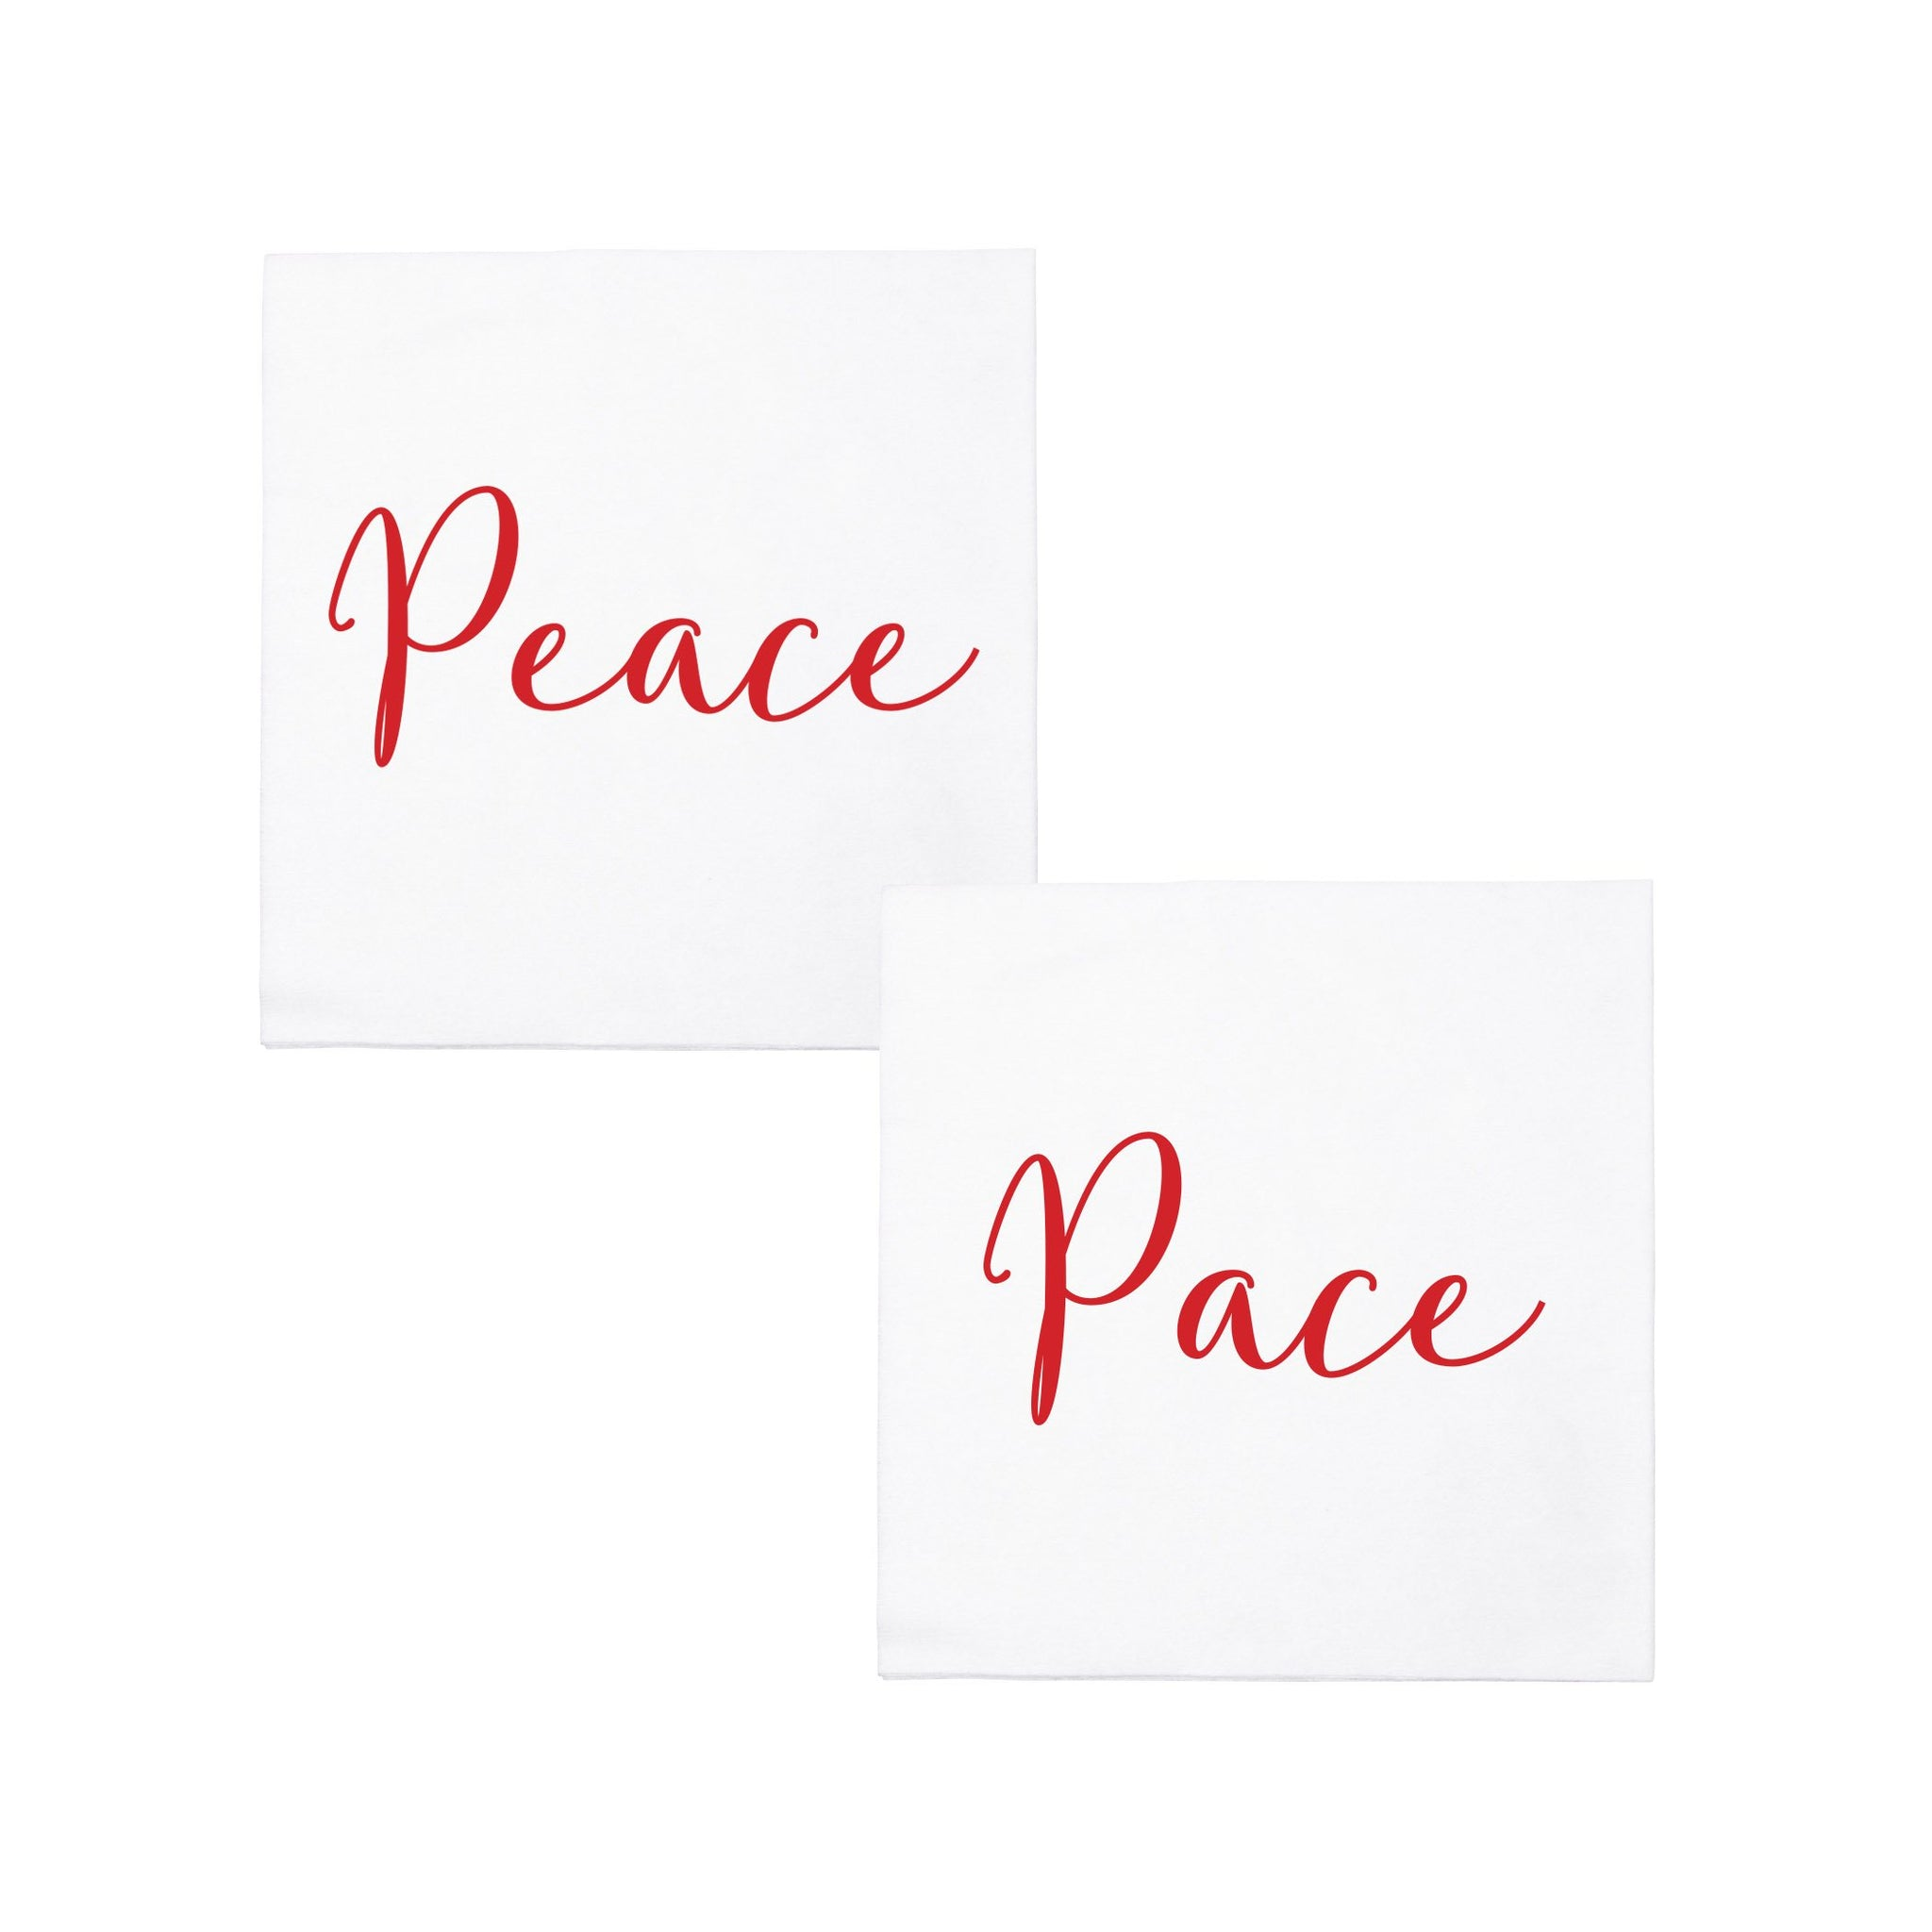 Papersoft Napkins Peace/Pace Cocktail Napkins (Pack of 20)